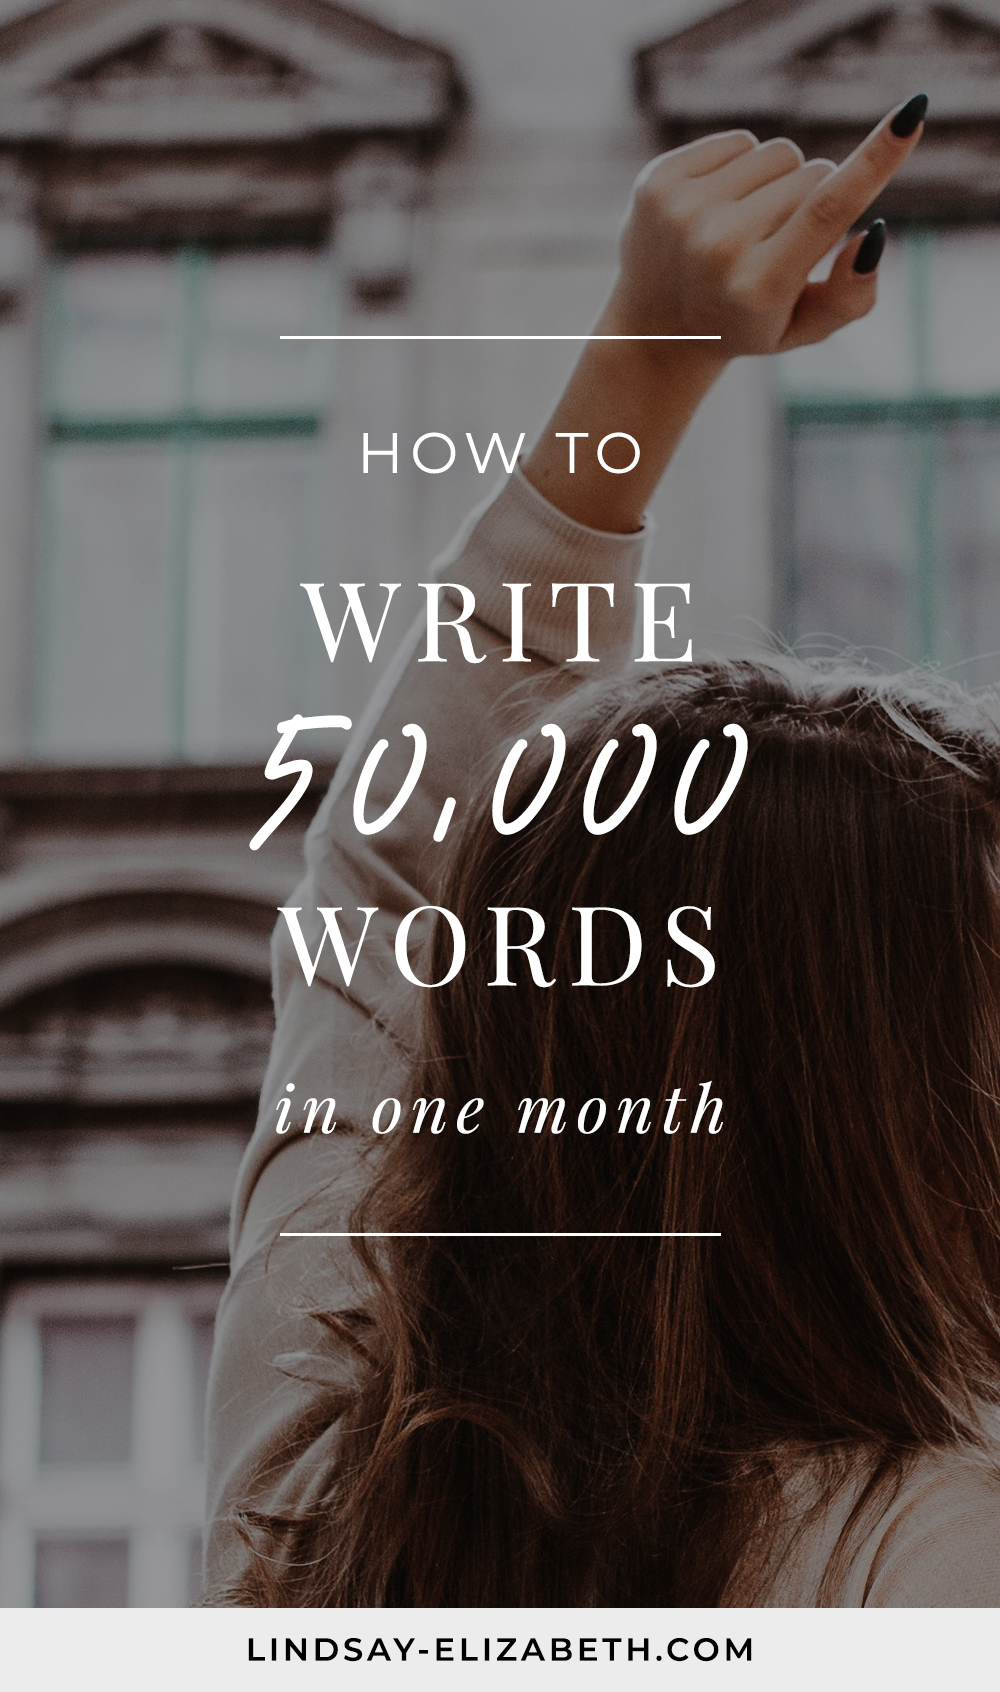 After suffering from creative blocks that led to multiple failed attempts at NaNoWriMo, I finally experienced breakthroughs that helped me write 50,000 words in one month and win the challenge. Here are my tips on beating writer's block, writing consistently, and winning NaNoWriMo.